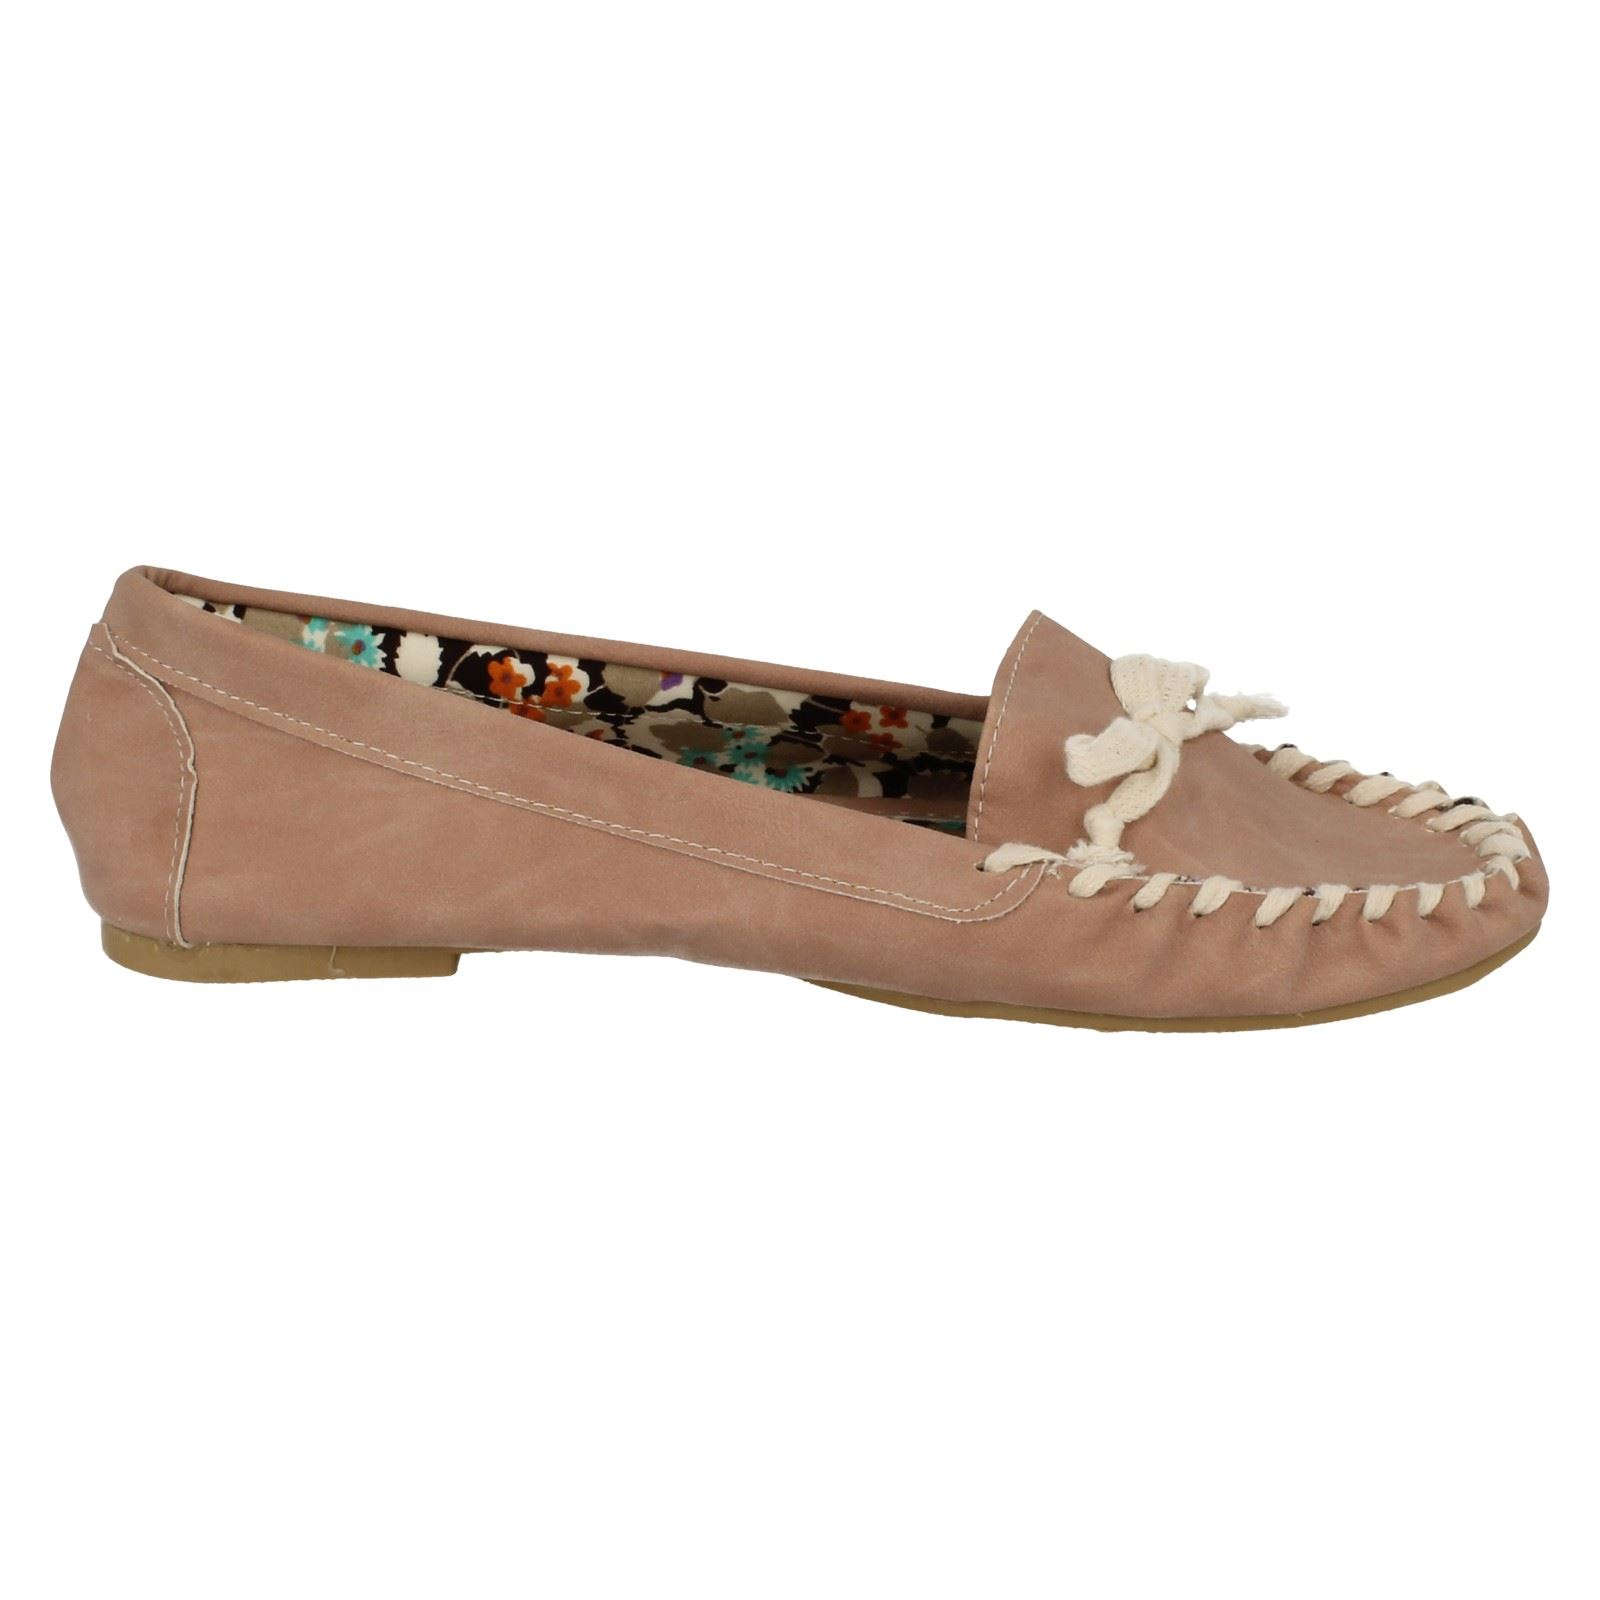 Ladies-Spot-on-Pantofola-Stile-Mocassini-da-039-039